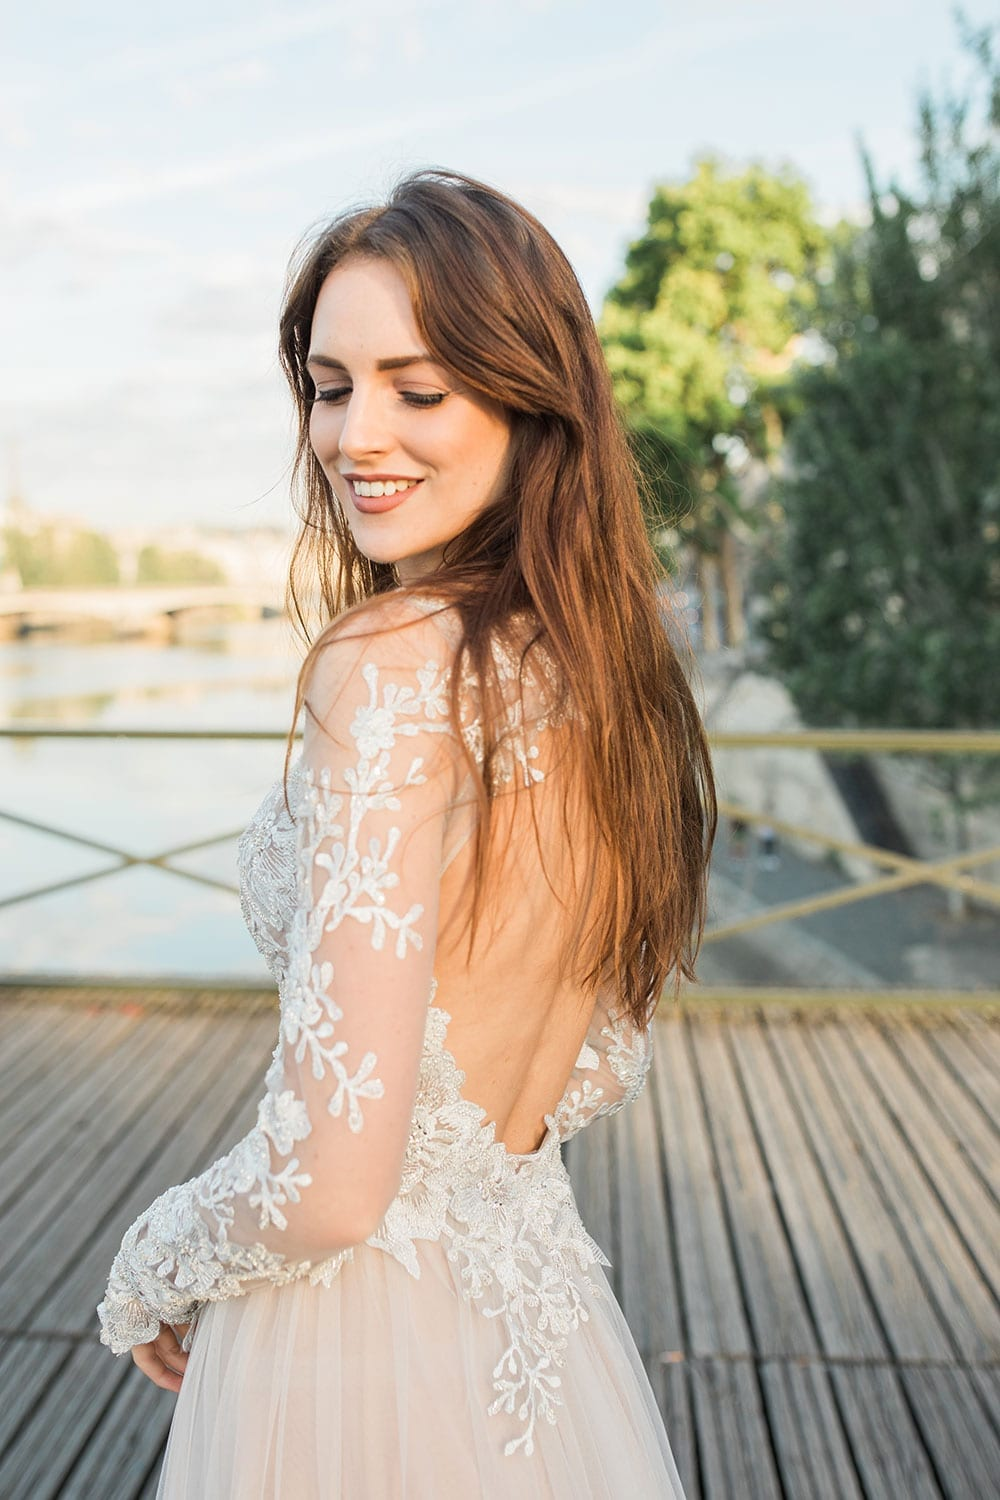 Model wearing Vinka Design Suri Wedding Dress, a Backless Silver Tulle and Lace Gown with Long Sleeves on a boardwalk in Paris